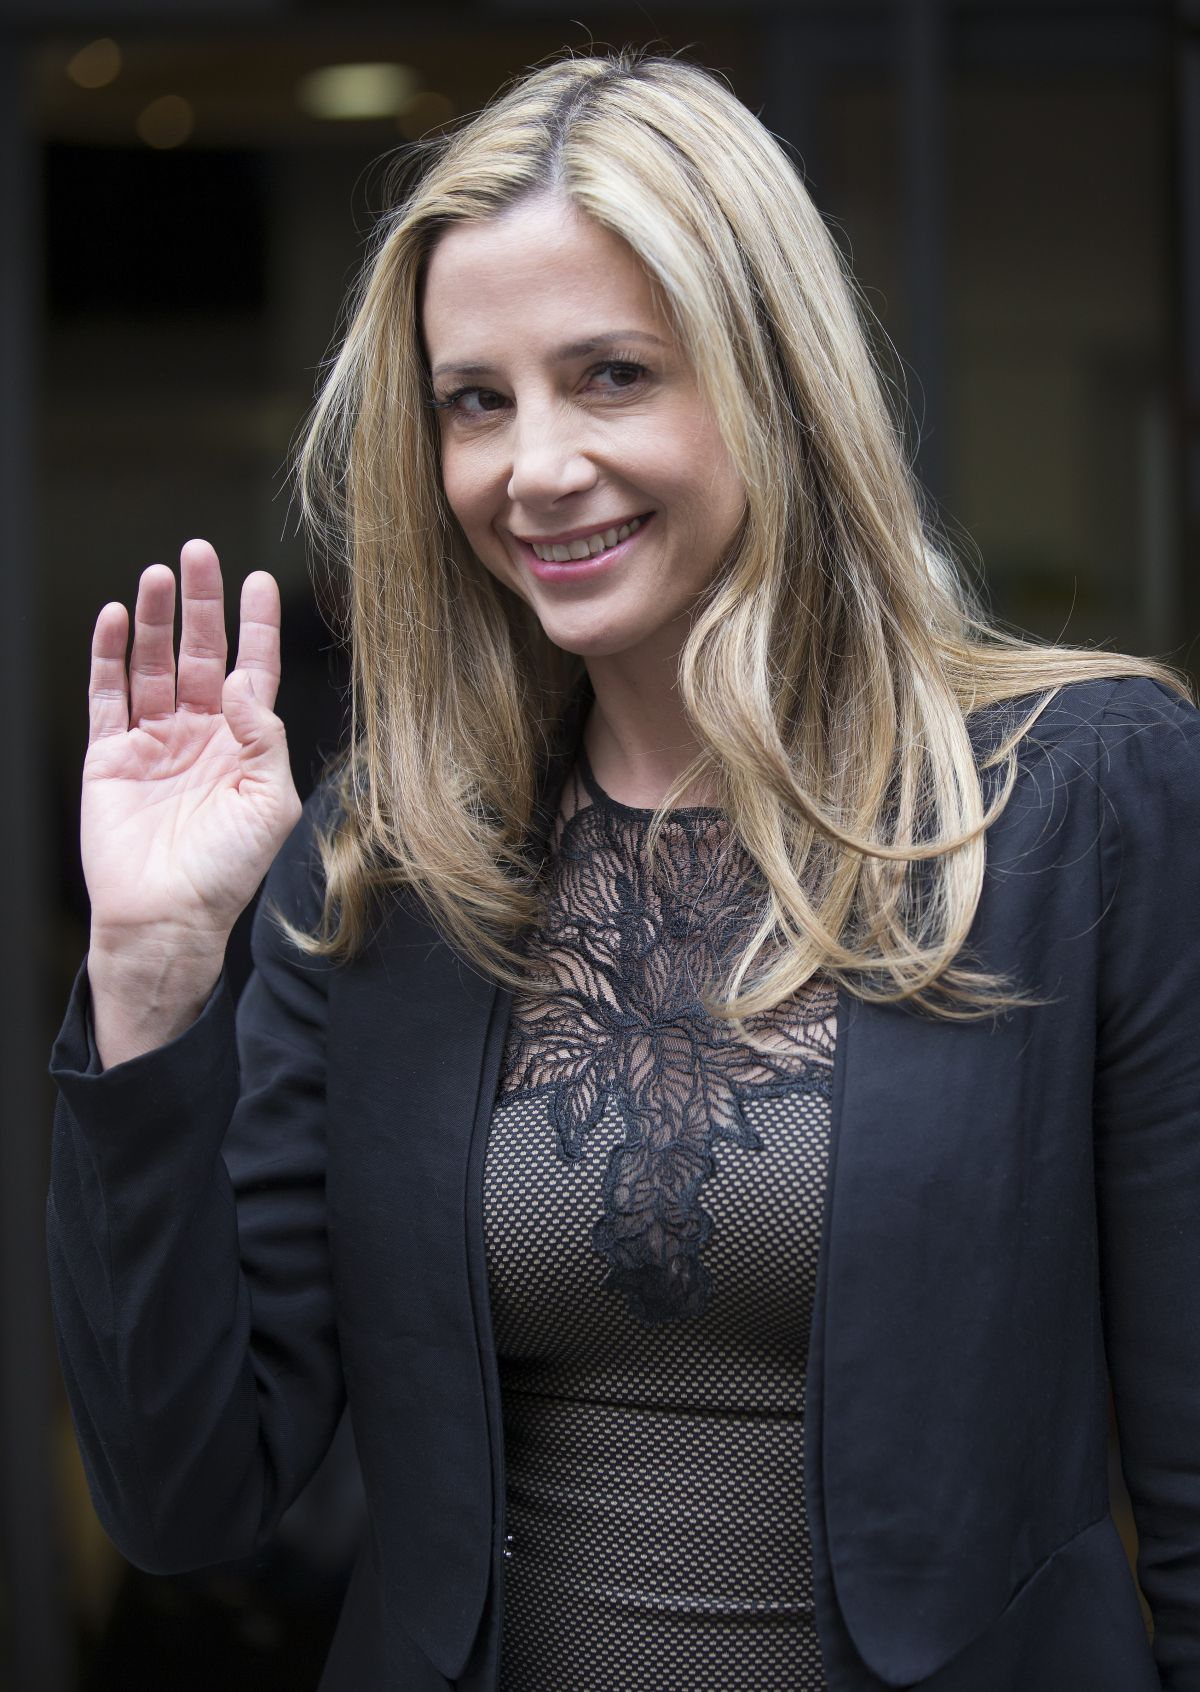 mira sorvino twittermira sorvino 2016, mira sorvino and quentin tarantino, mira sorvino 2014, mira sorvino twitter, mira sorvino photo, mira sorvino wdw, mira sorvino filmography, mira sorvino accent, mira sorvino father, mira sorvino facebook, mira sorvino chinese, mira sorvino instagram, mira sorvino marilyn monroe, мира сорвино ленинград, mira sorvino nationality, mira sorvino boyfriend